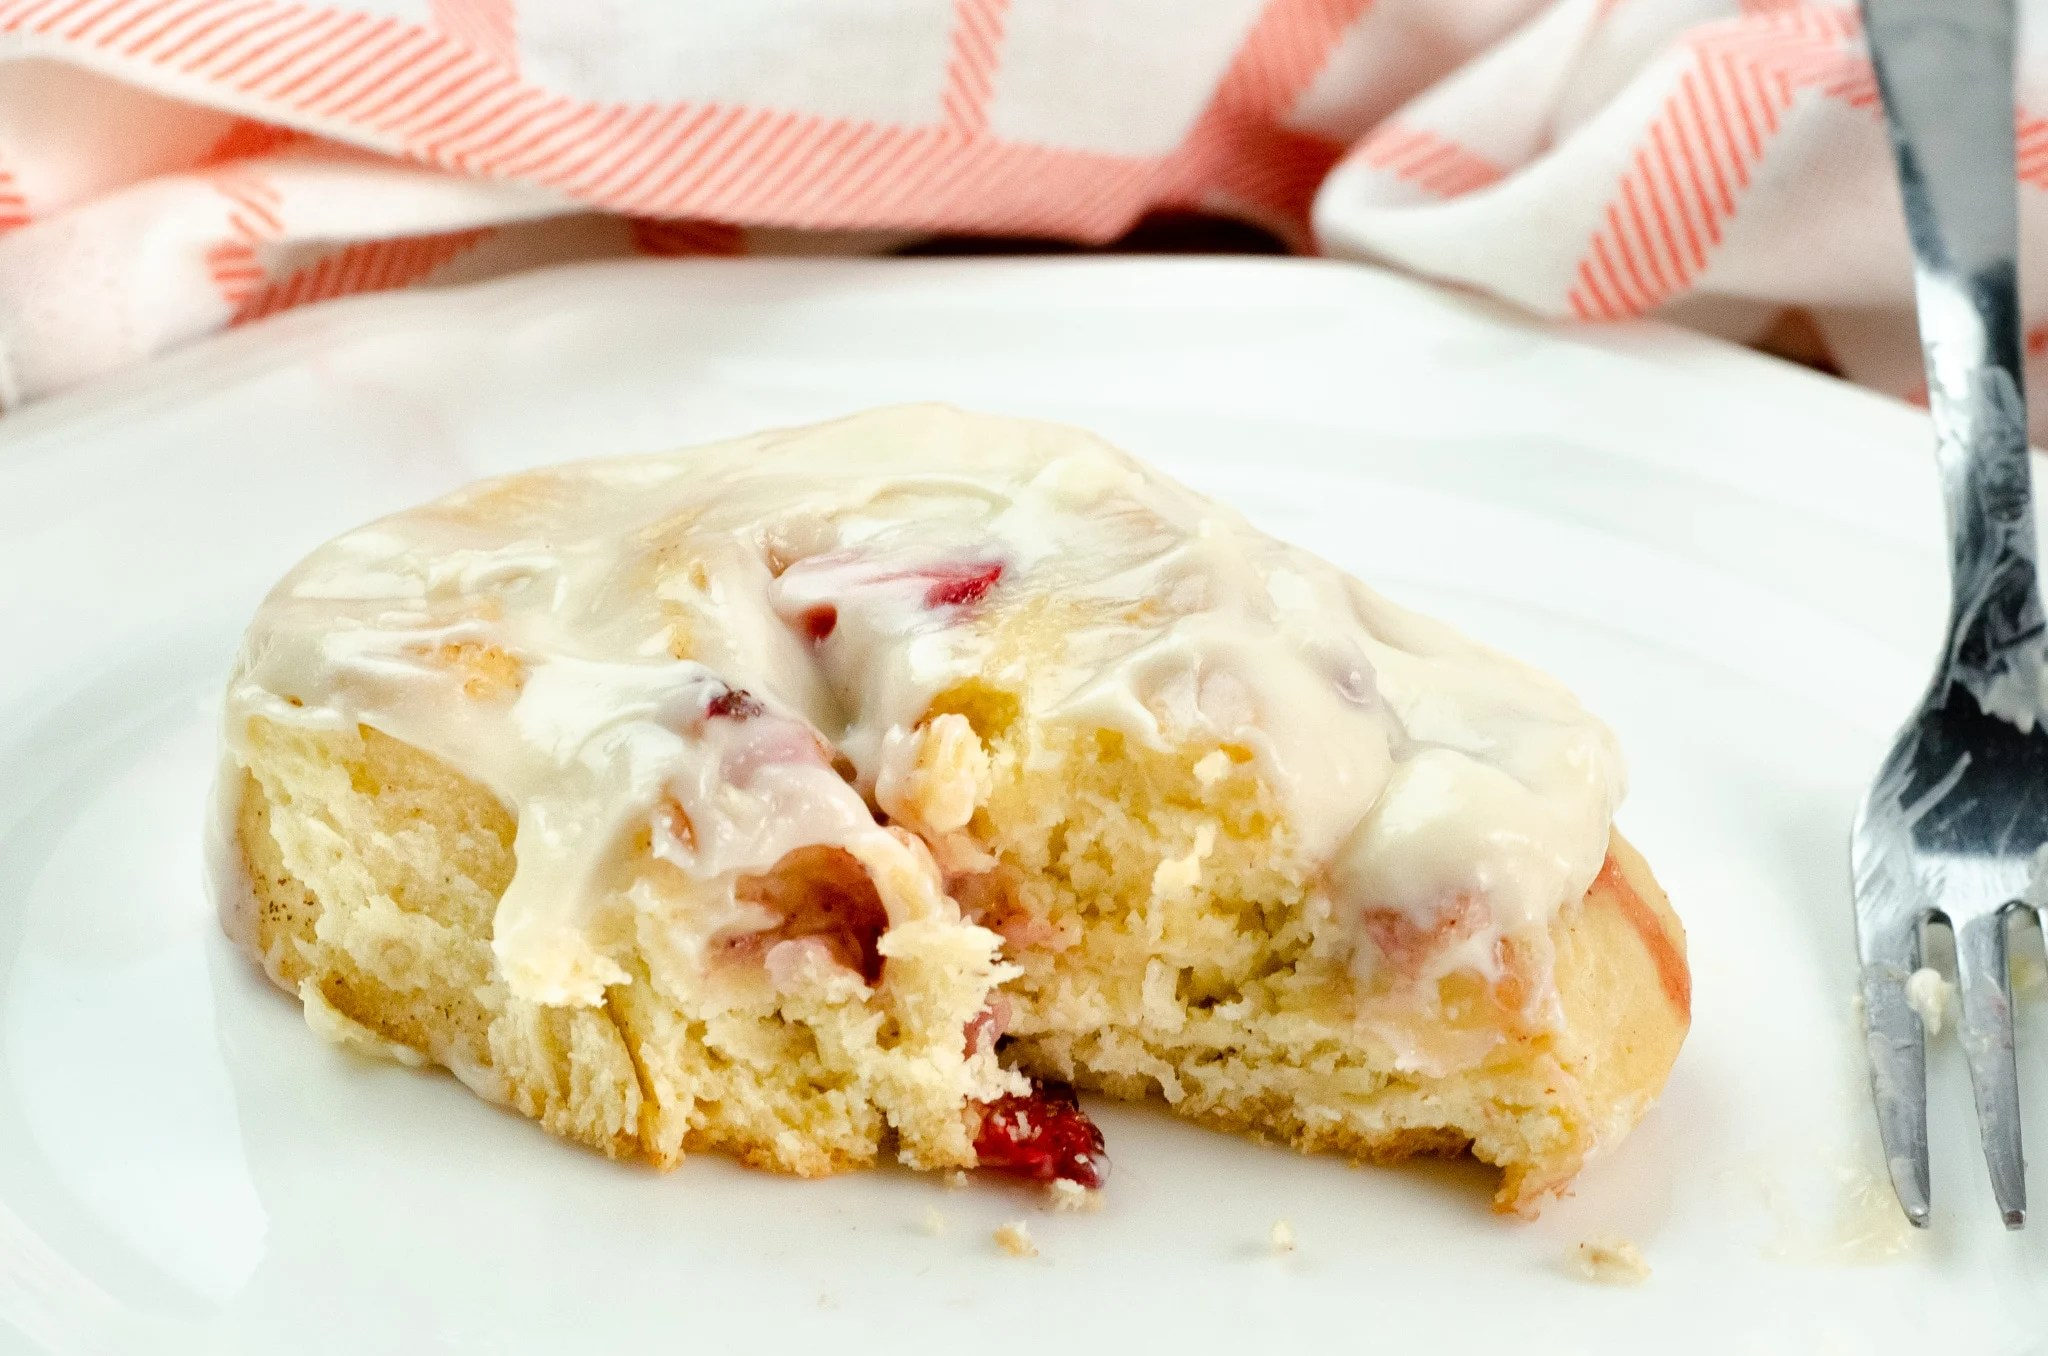 Strawberry Cinnamon Rolls with Cream Cheese Icing Bite. Bake your family my Strawberry Cinnamon Rolls with Cream Cheese Icing for a delicious breakfast treat. It's the star dish of any breakfast, brunch or weekday treat.